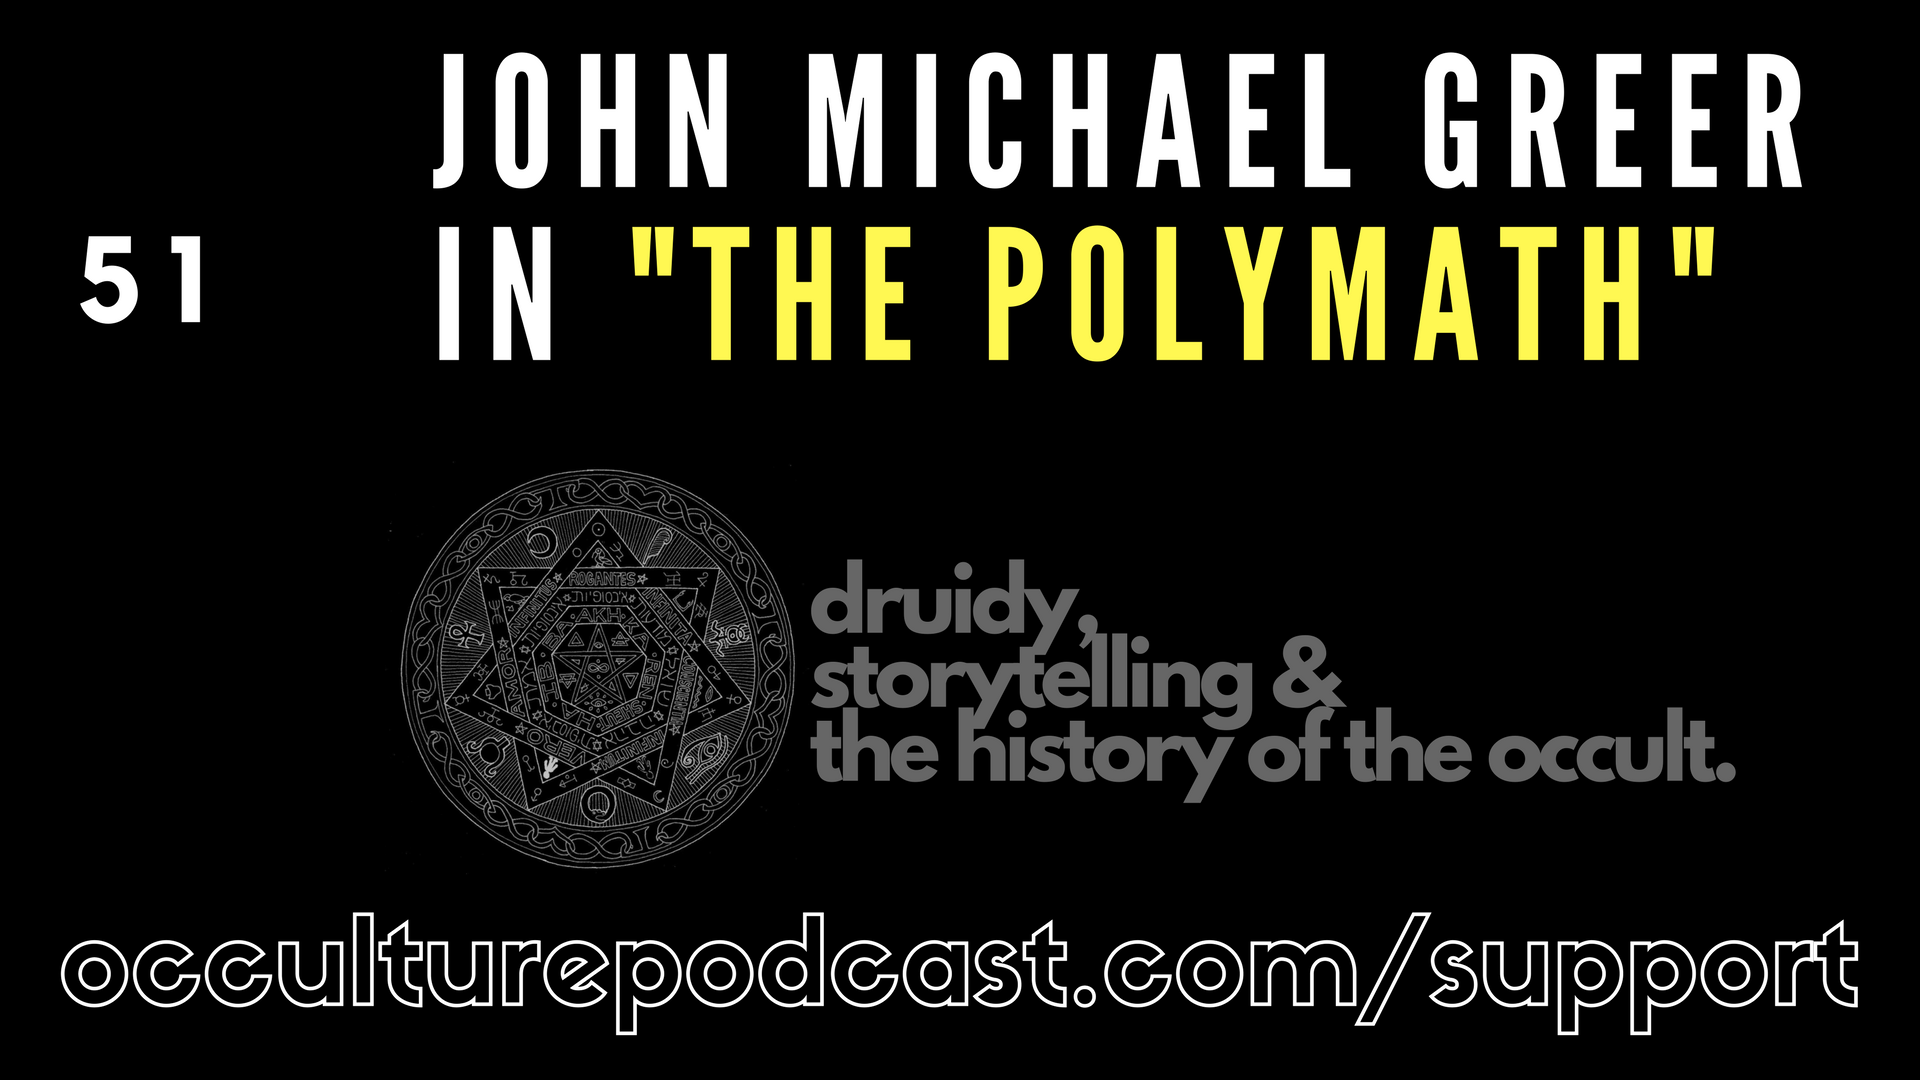 """Artwork for 52. John Michael Greer in """"The Polymath"""" // Druidry, Storytelling & the History of the Occult"""